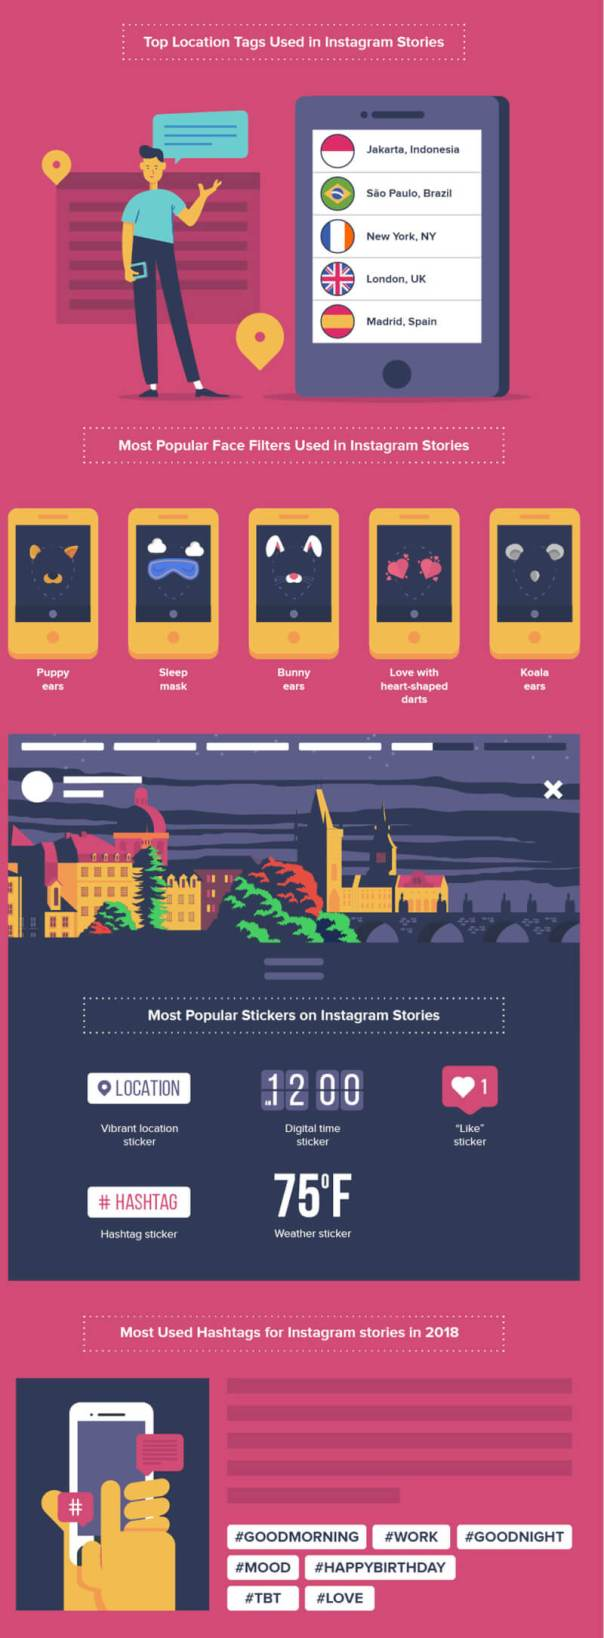 Best-Examples-of-How-Brands-Use-Instagram-Stories-Infographic_07